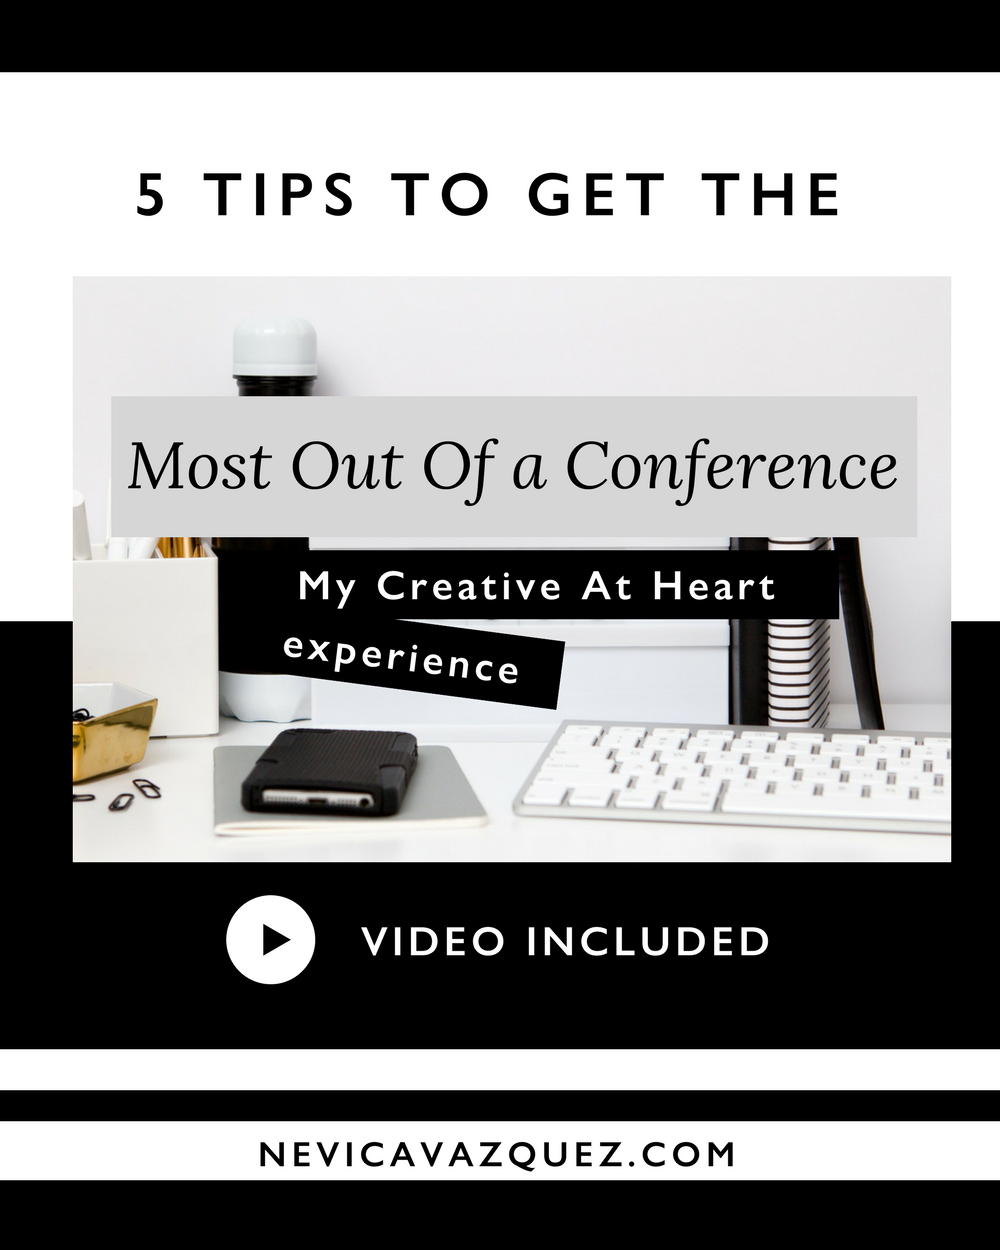 5 Tips To Getting The Most Out Of a Conference - My Creative at Heart Experience